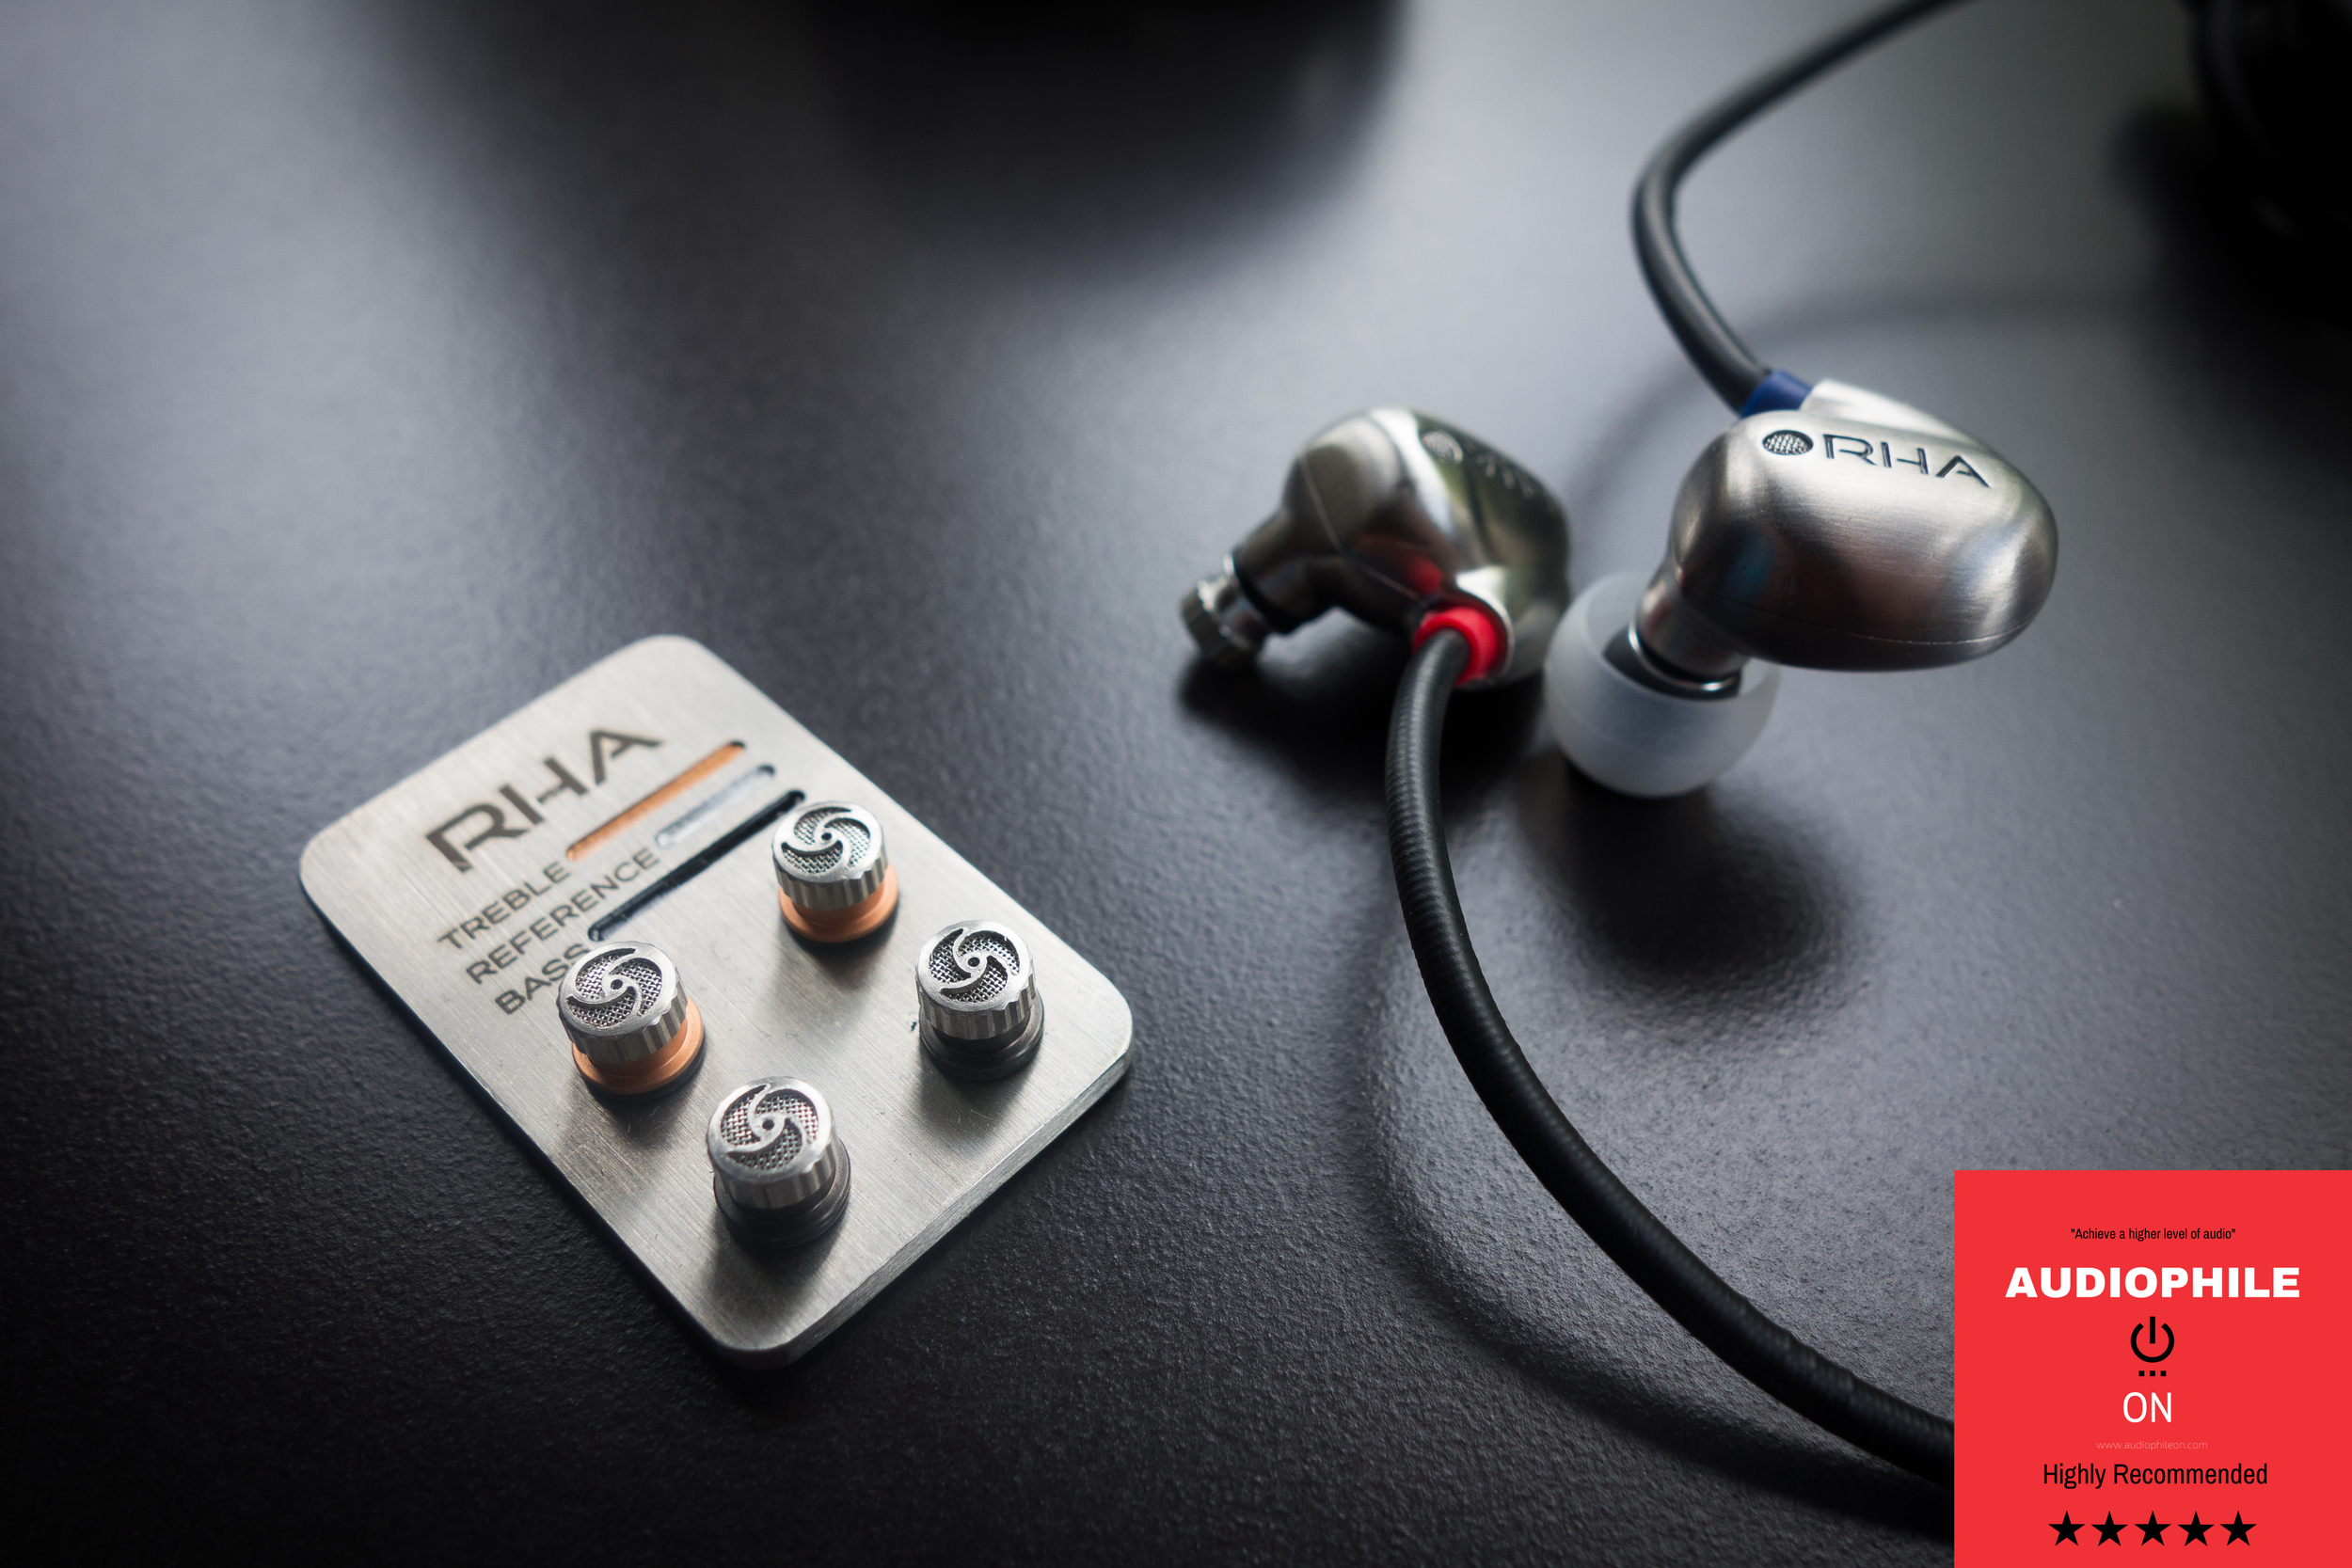 The custom filter set lets you tune the RHA t20 to better suit your needs.